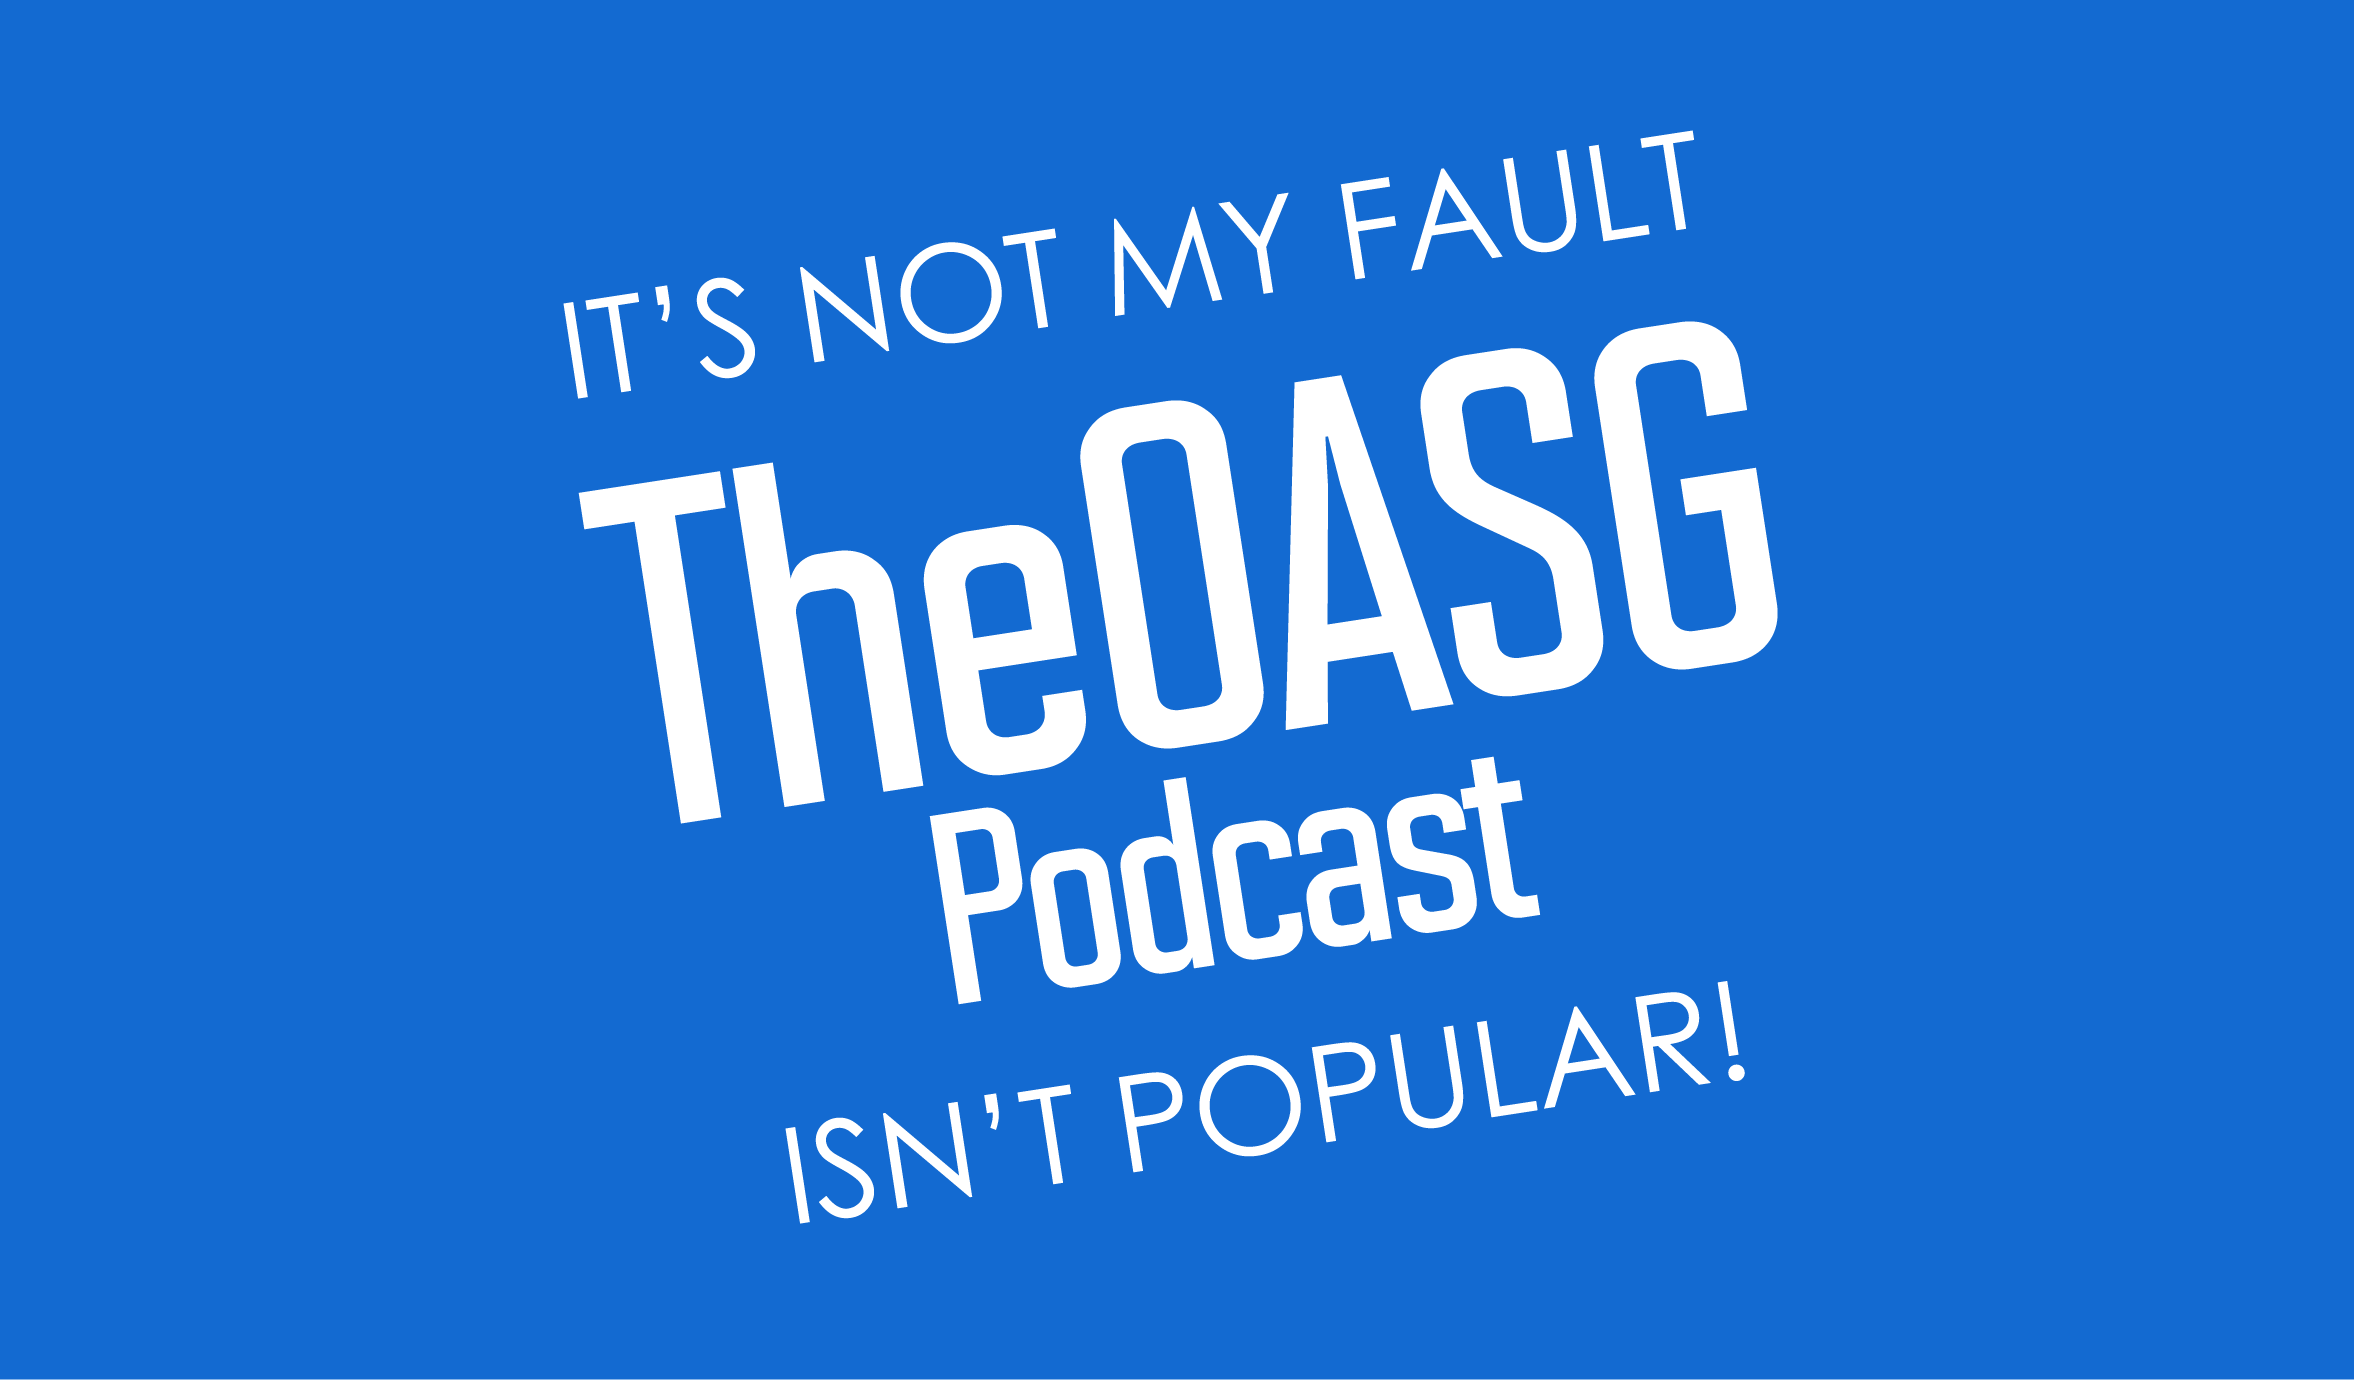 Featured image for TheOASG Podcast Episode 119: That Manga's Not as Niche as You Thought